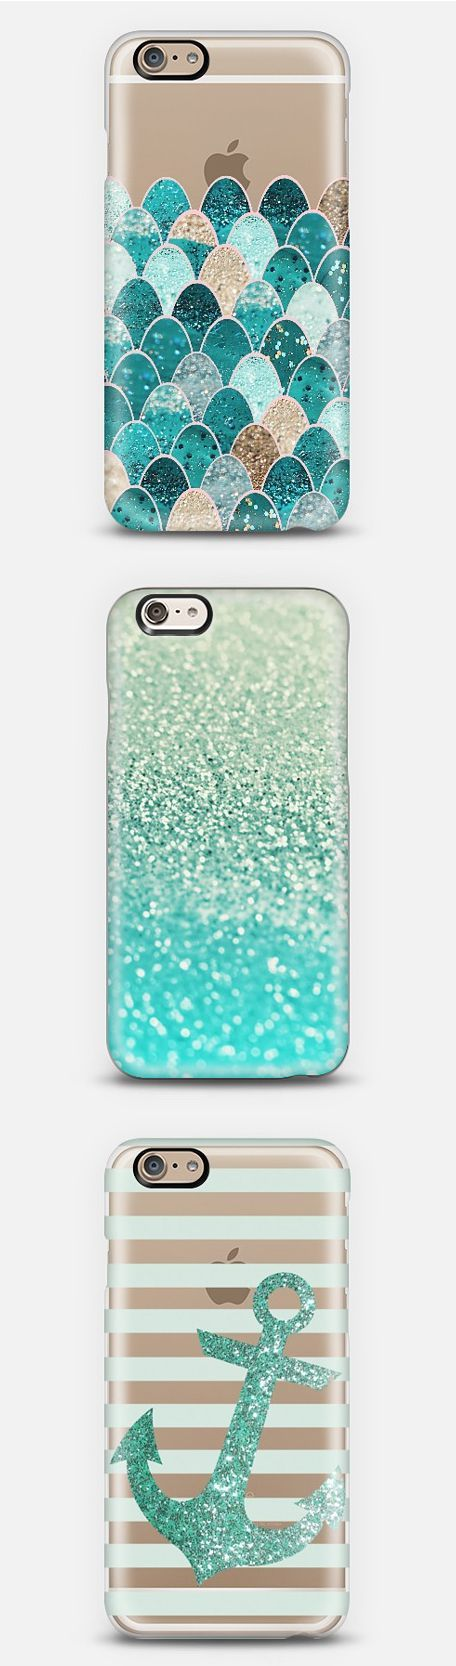 Ok, now this might be expensive, but these are the most ADORABLE cases for the iPhone 6+ I have seen so far!